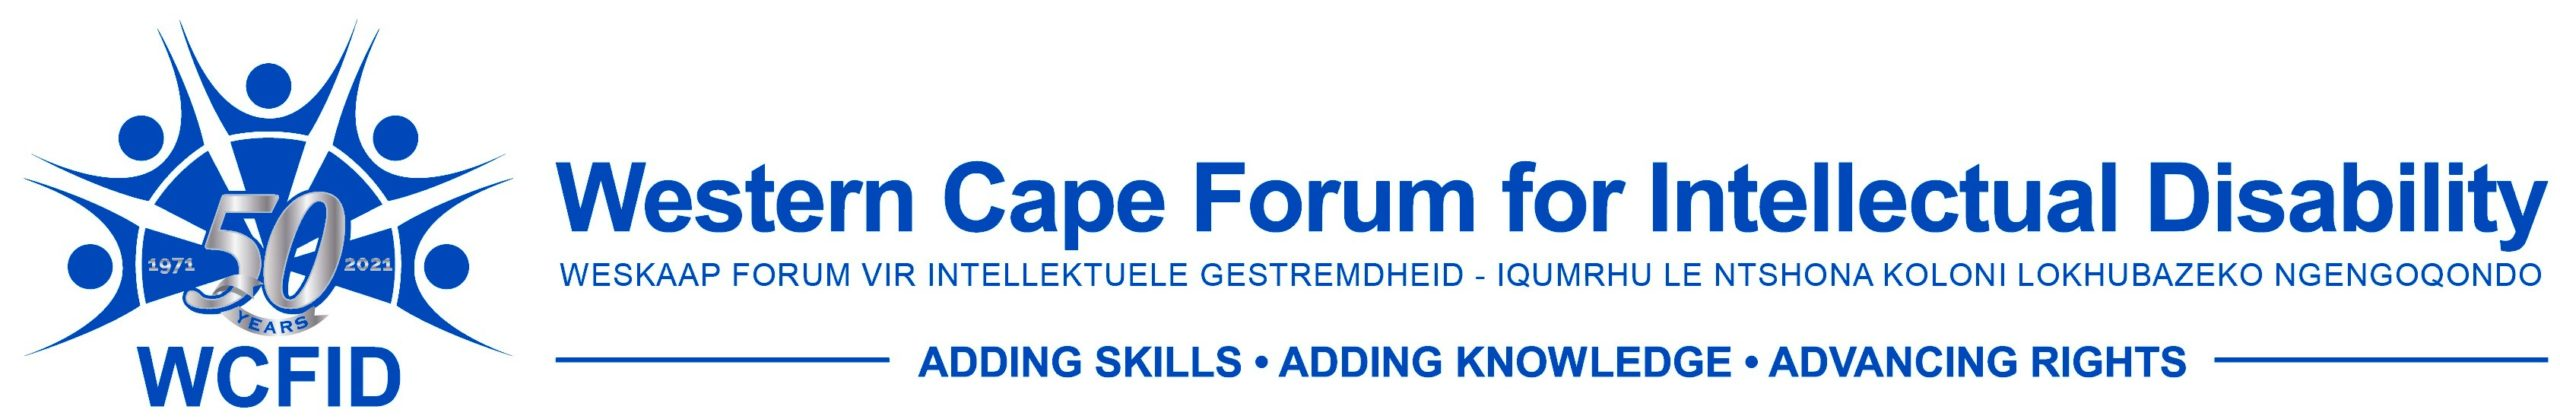 Western Cape Forum For Intellectual Disability